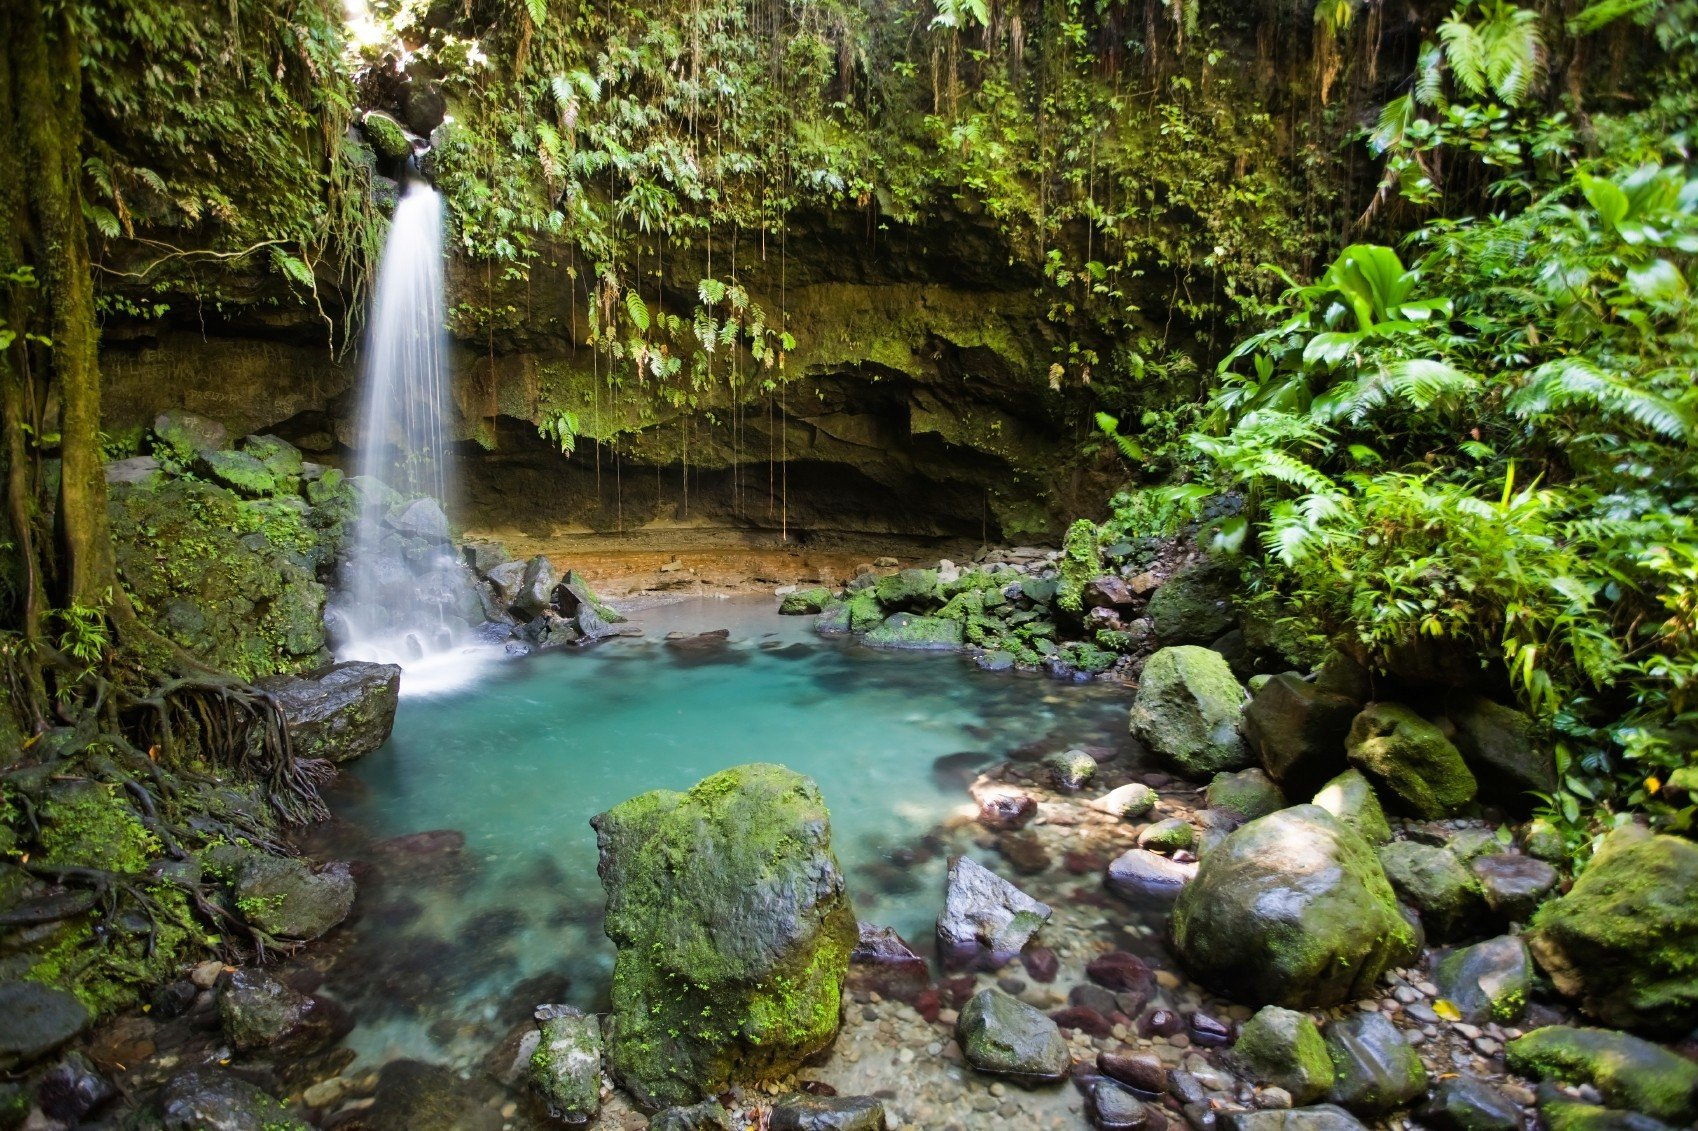 caribbean Secret Getaways Trip Ideas outdoor habitat Nature Waterfall vegetation body of water water watercourse rock stream rainforest water feature Forest River Jungle woodland old growth forest area surrounded